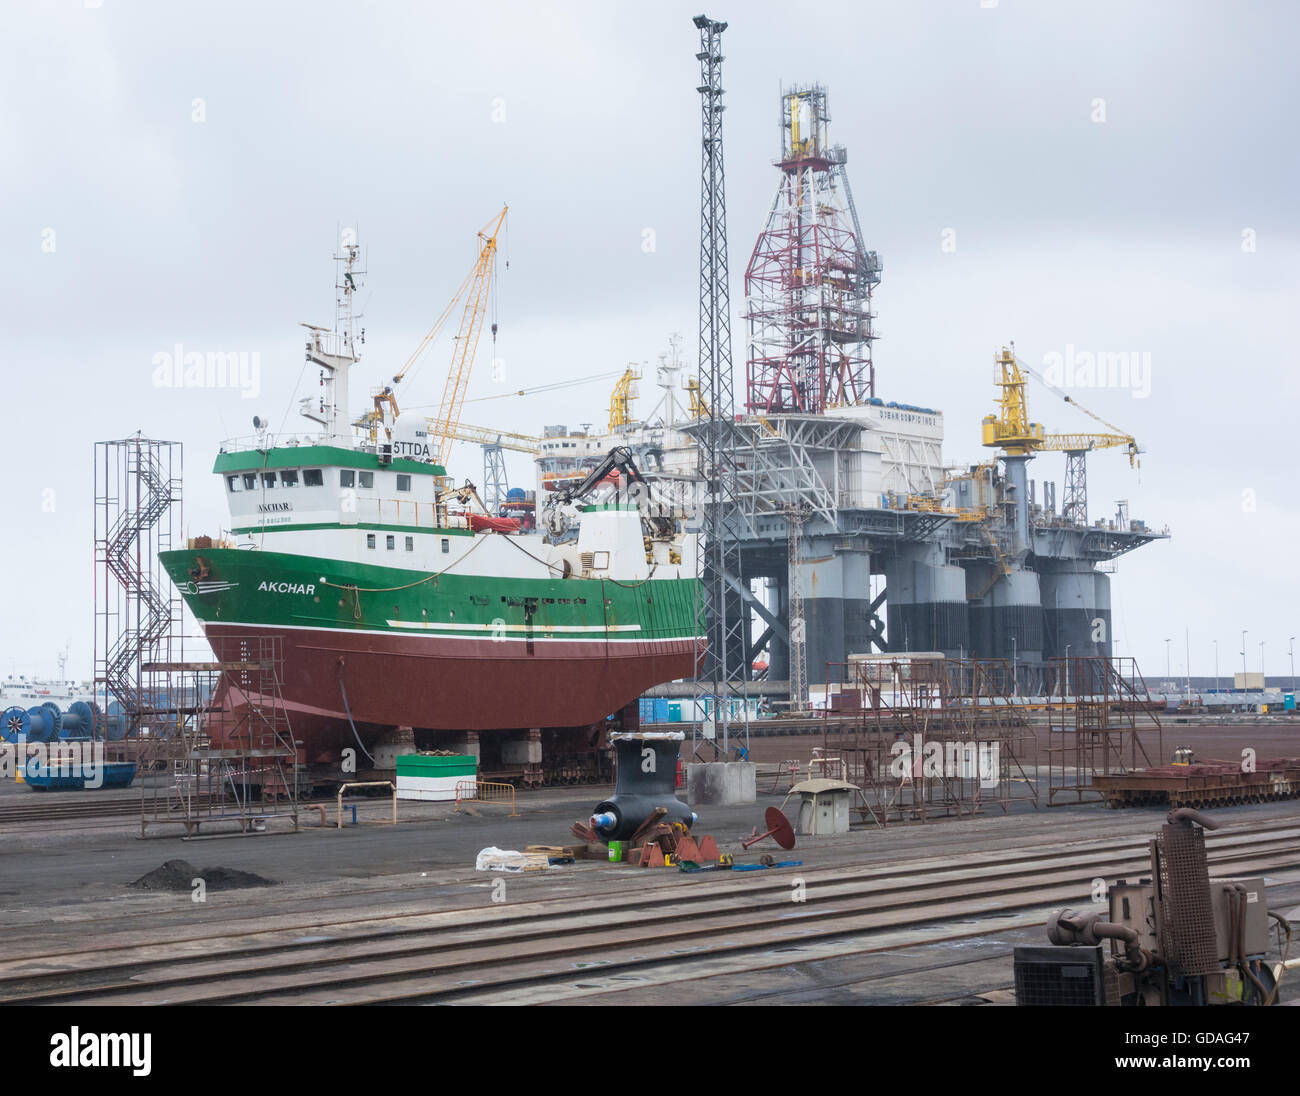 Ships and oil rig in repair yard in las palmas port on gran canaria stock photo royalty free - Port of las palmas gran canaria ...